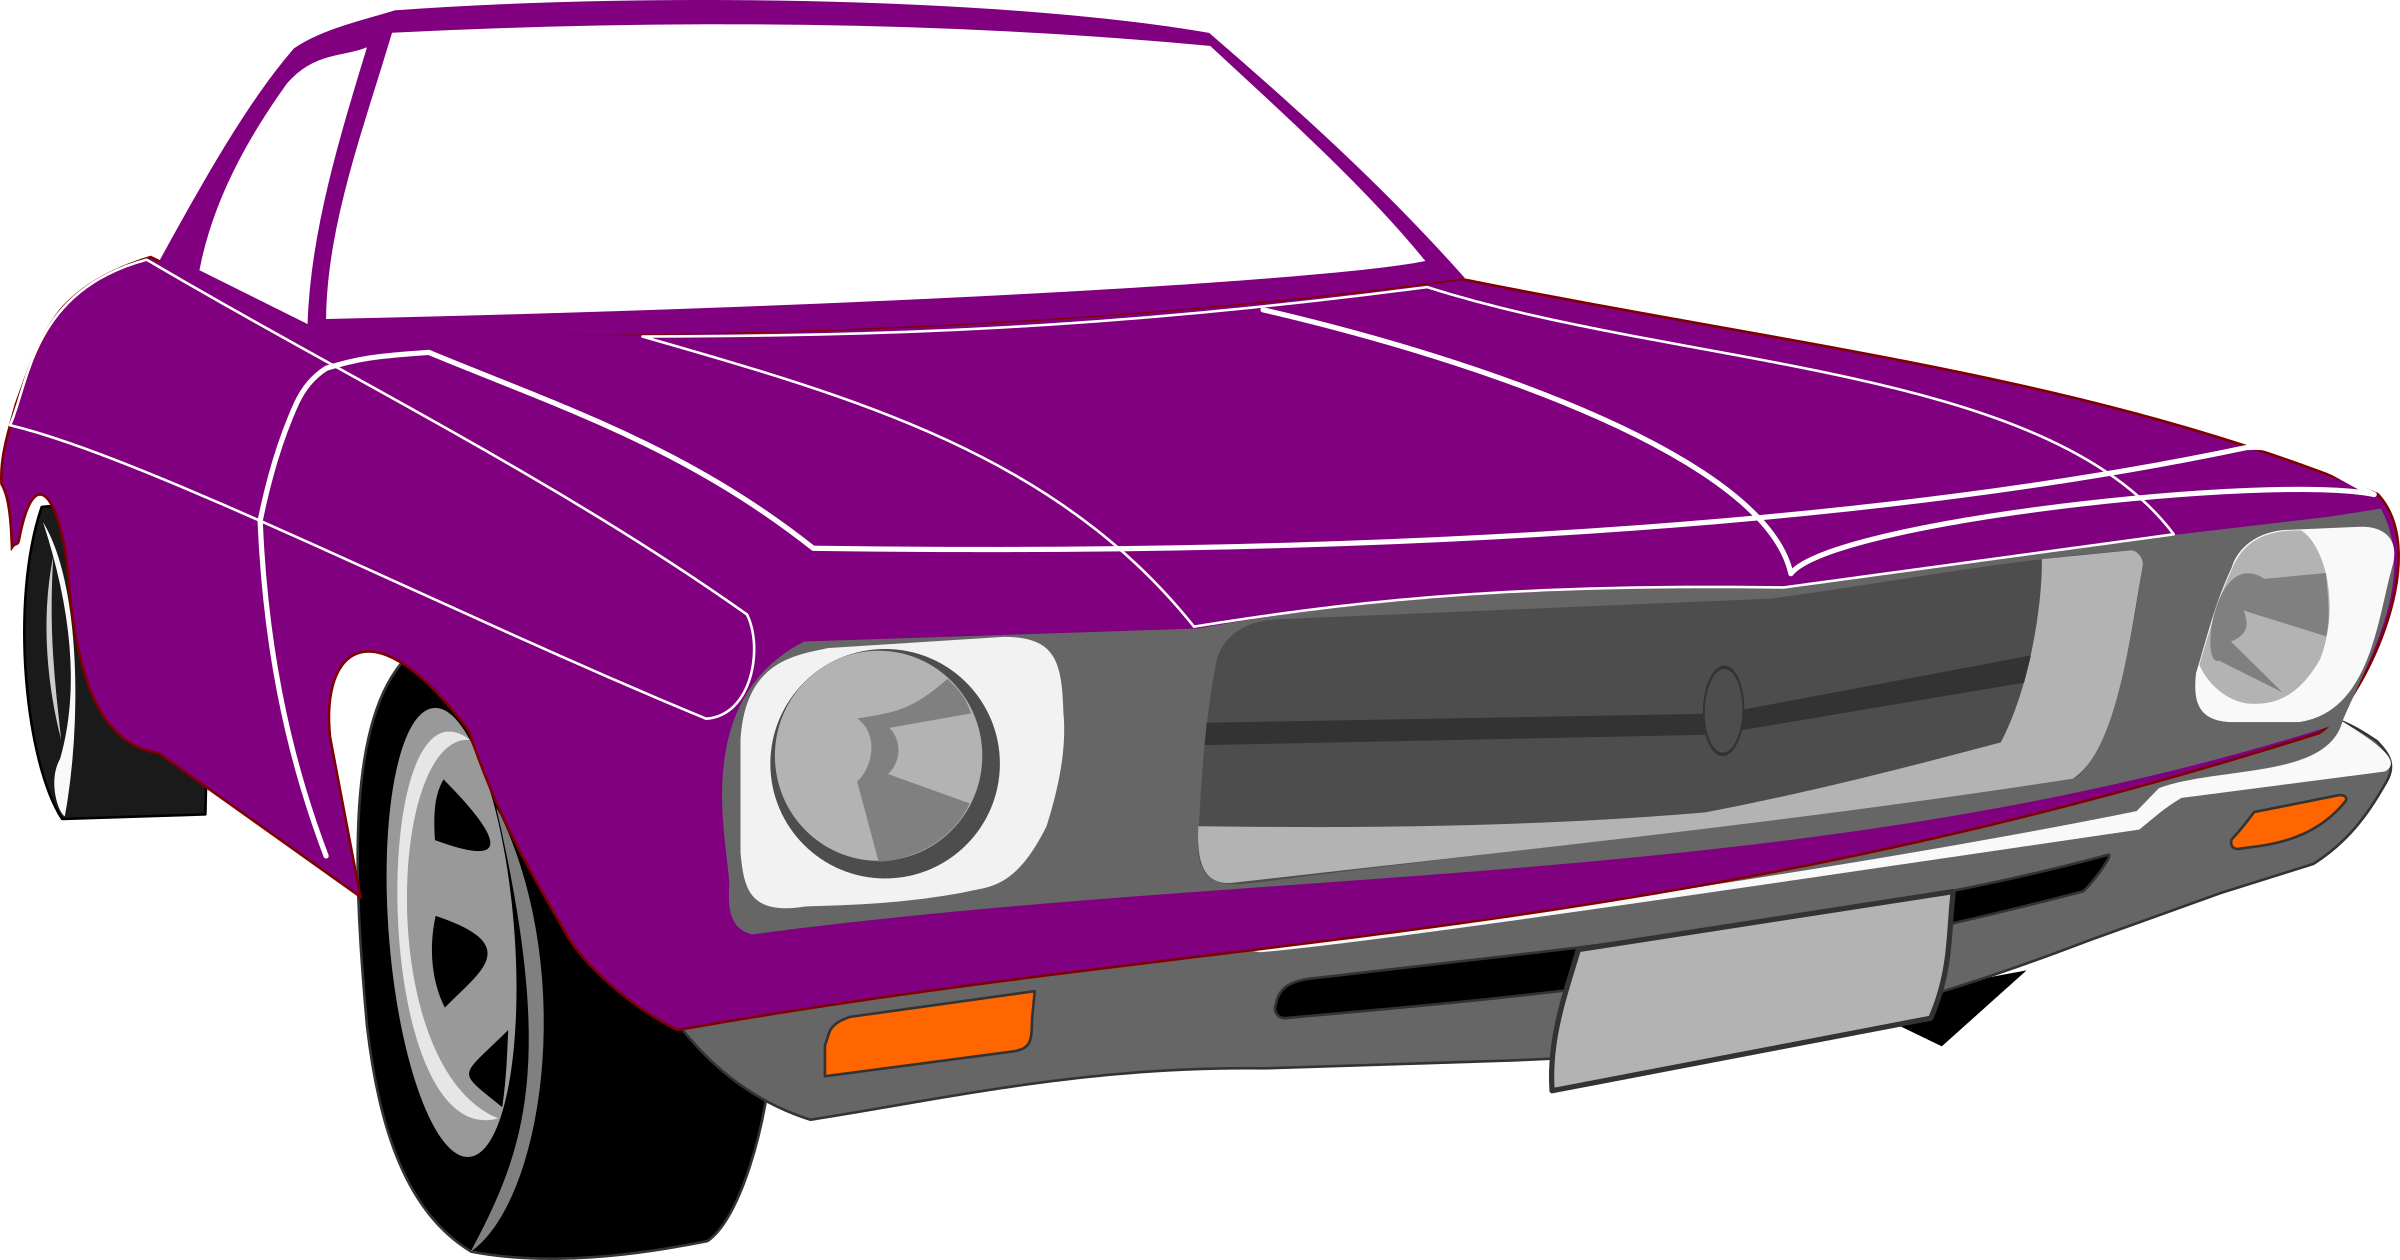 Car with hood open clipart png freeuse stock Clipart - Holden Kingswood 1976 png freeuse stock